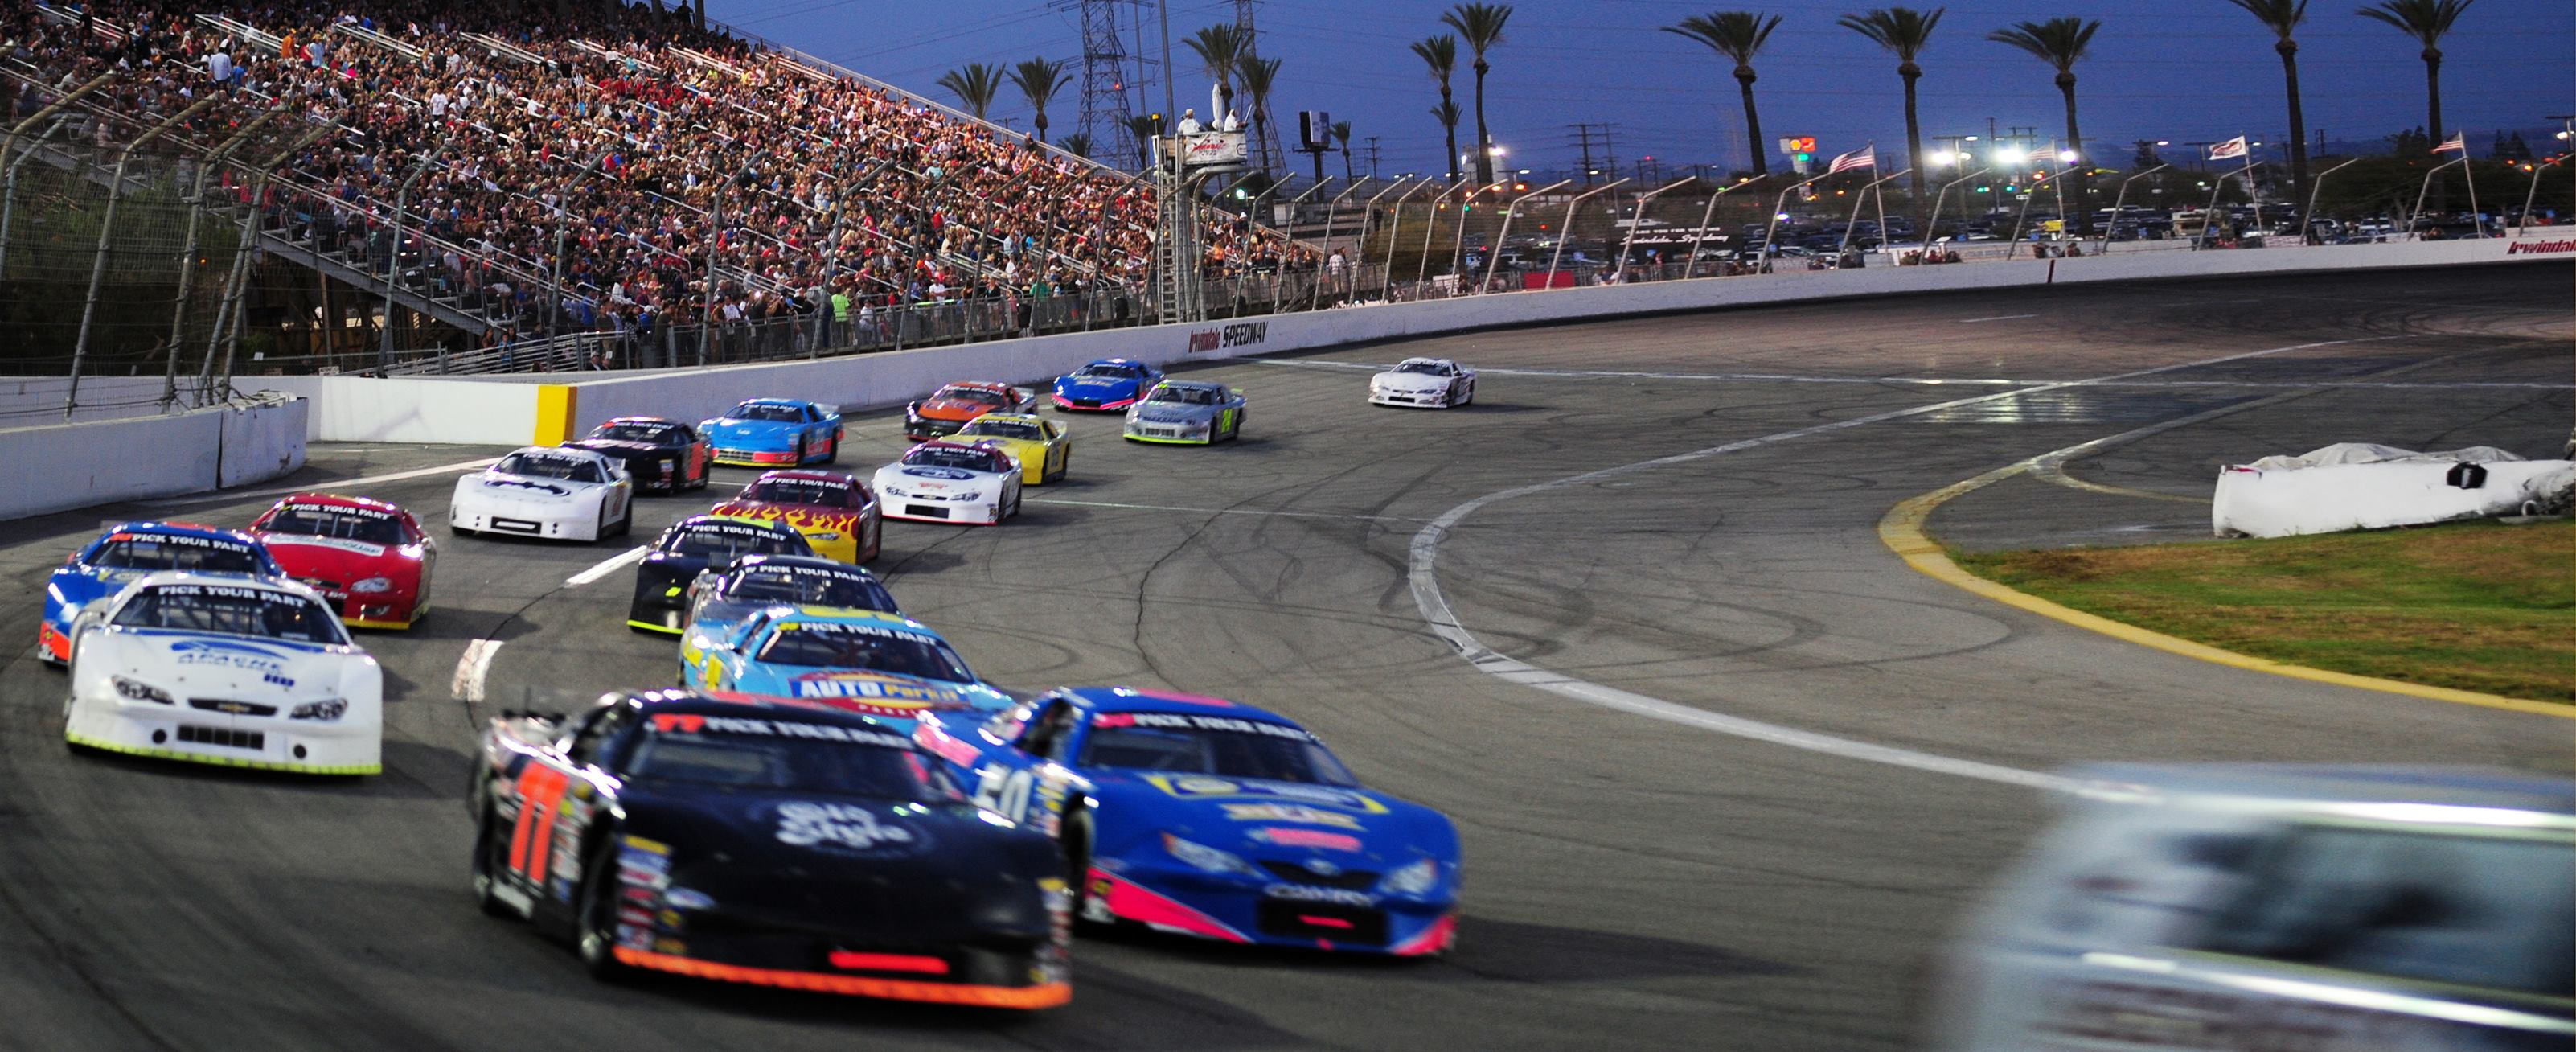 Irwindale Speedway race track closing